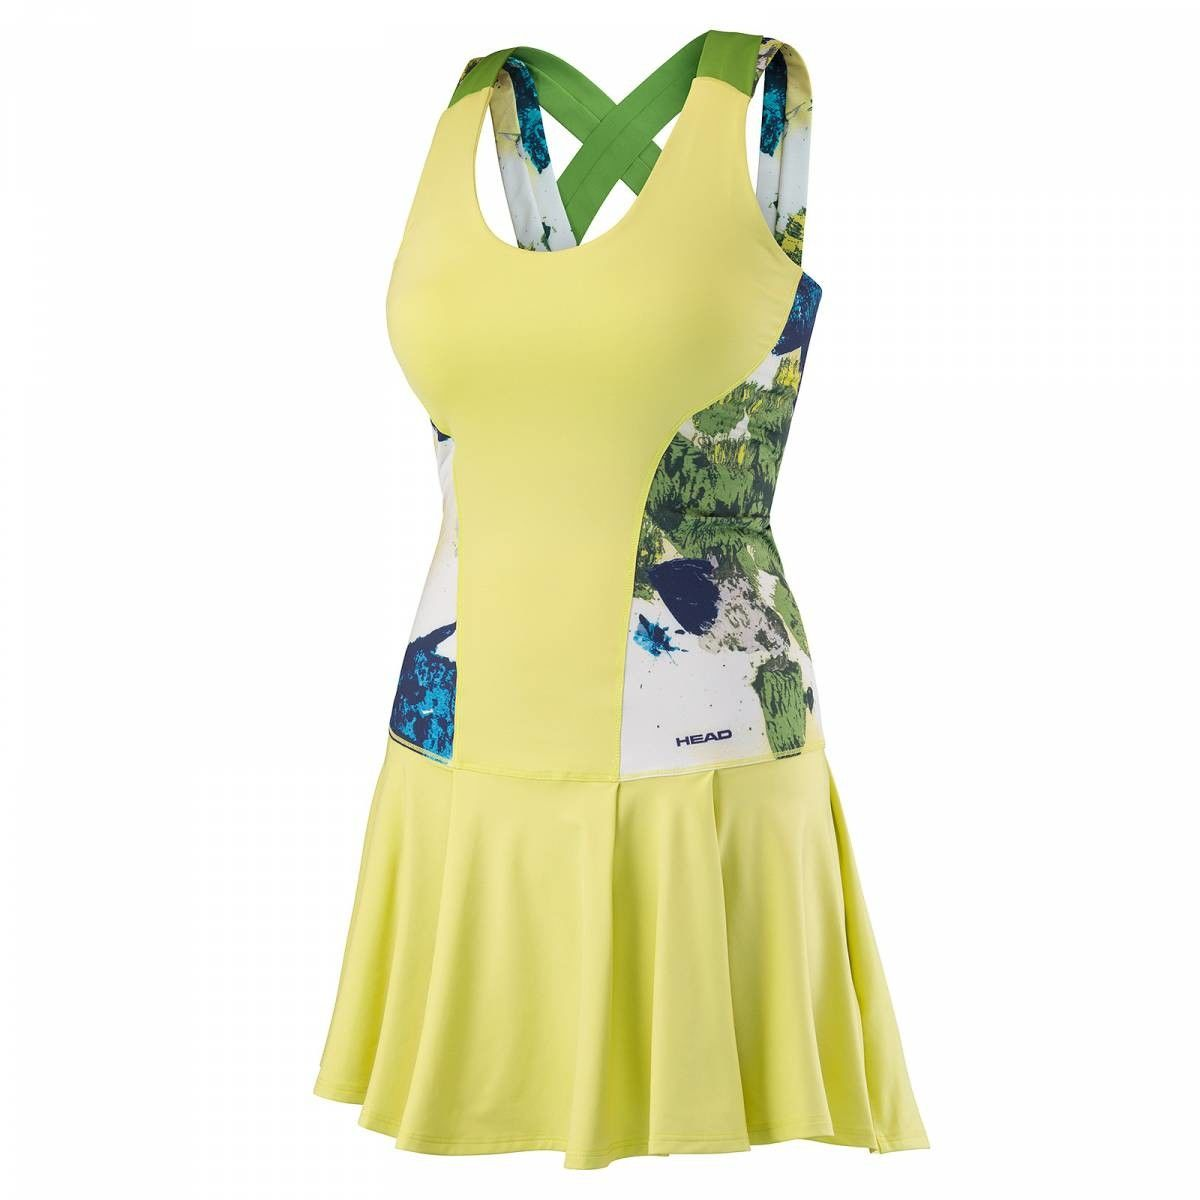 Head Vision Graphic Dress G - celery green